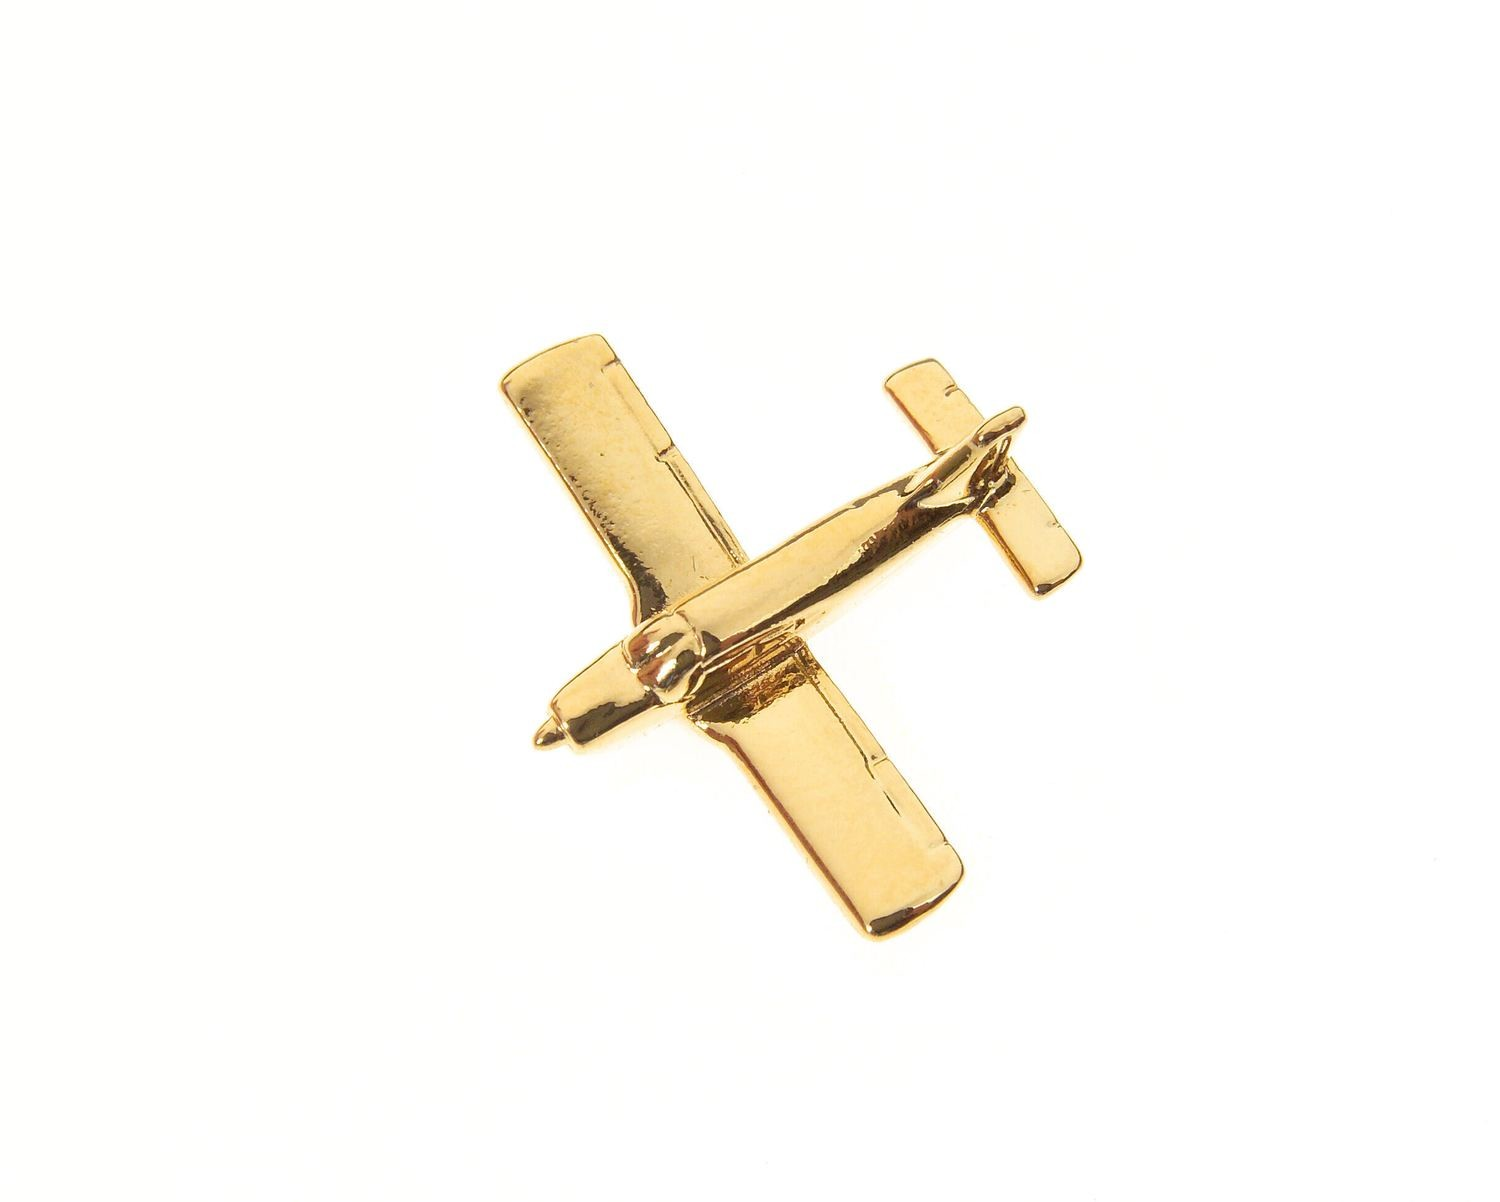 Piper Arrow Gold Plated Tie / Lapel Pin